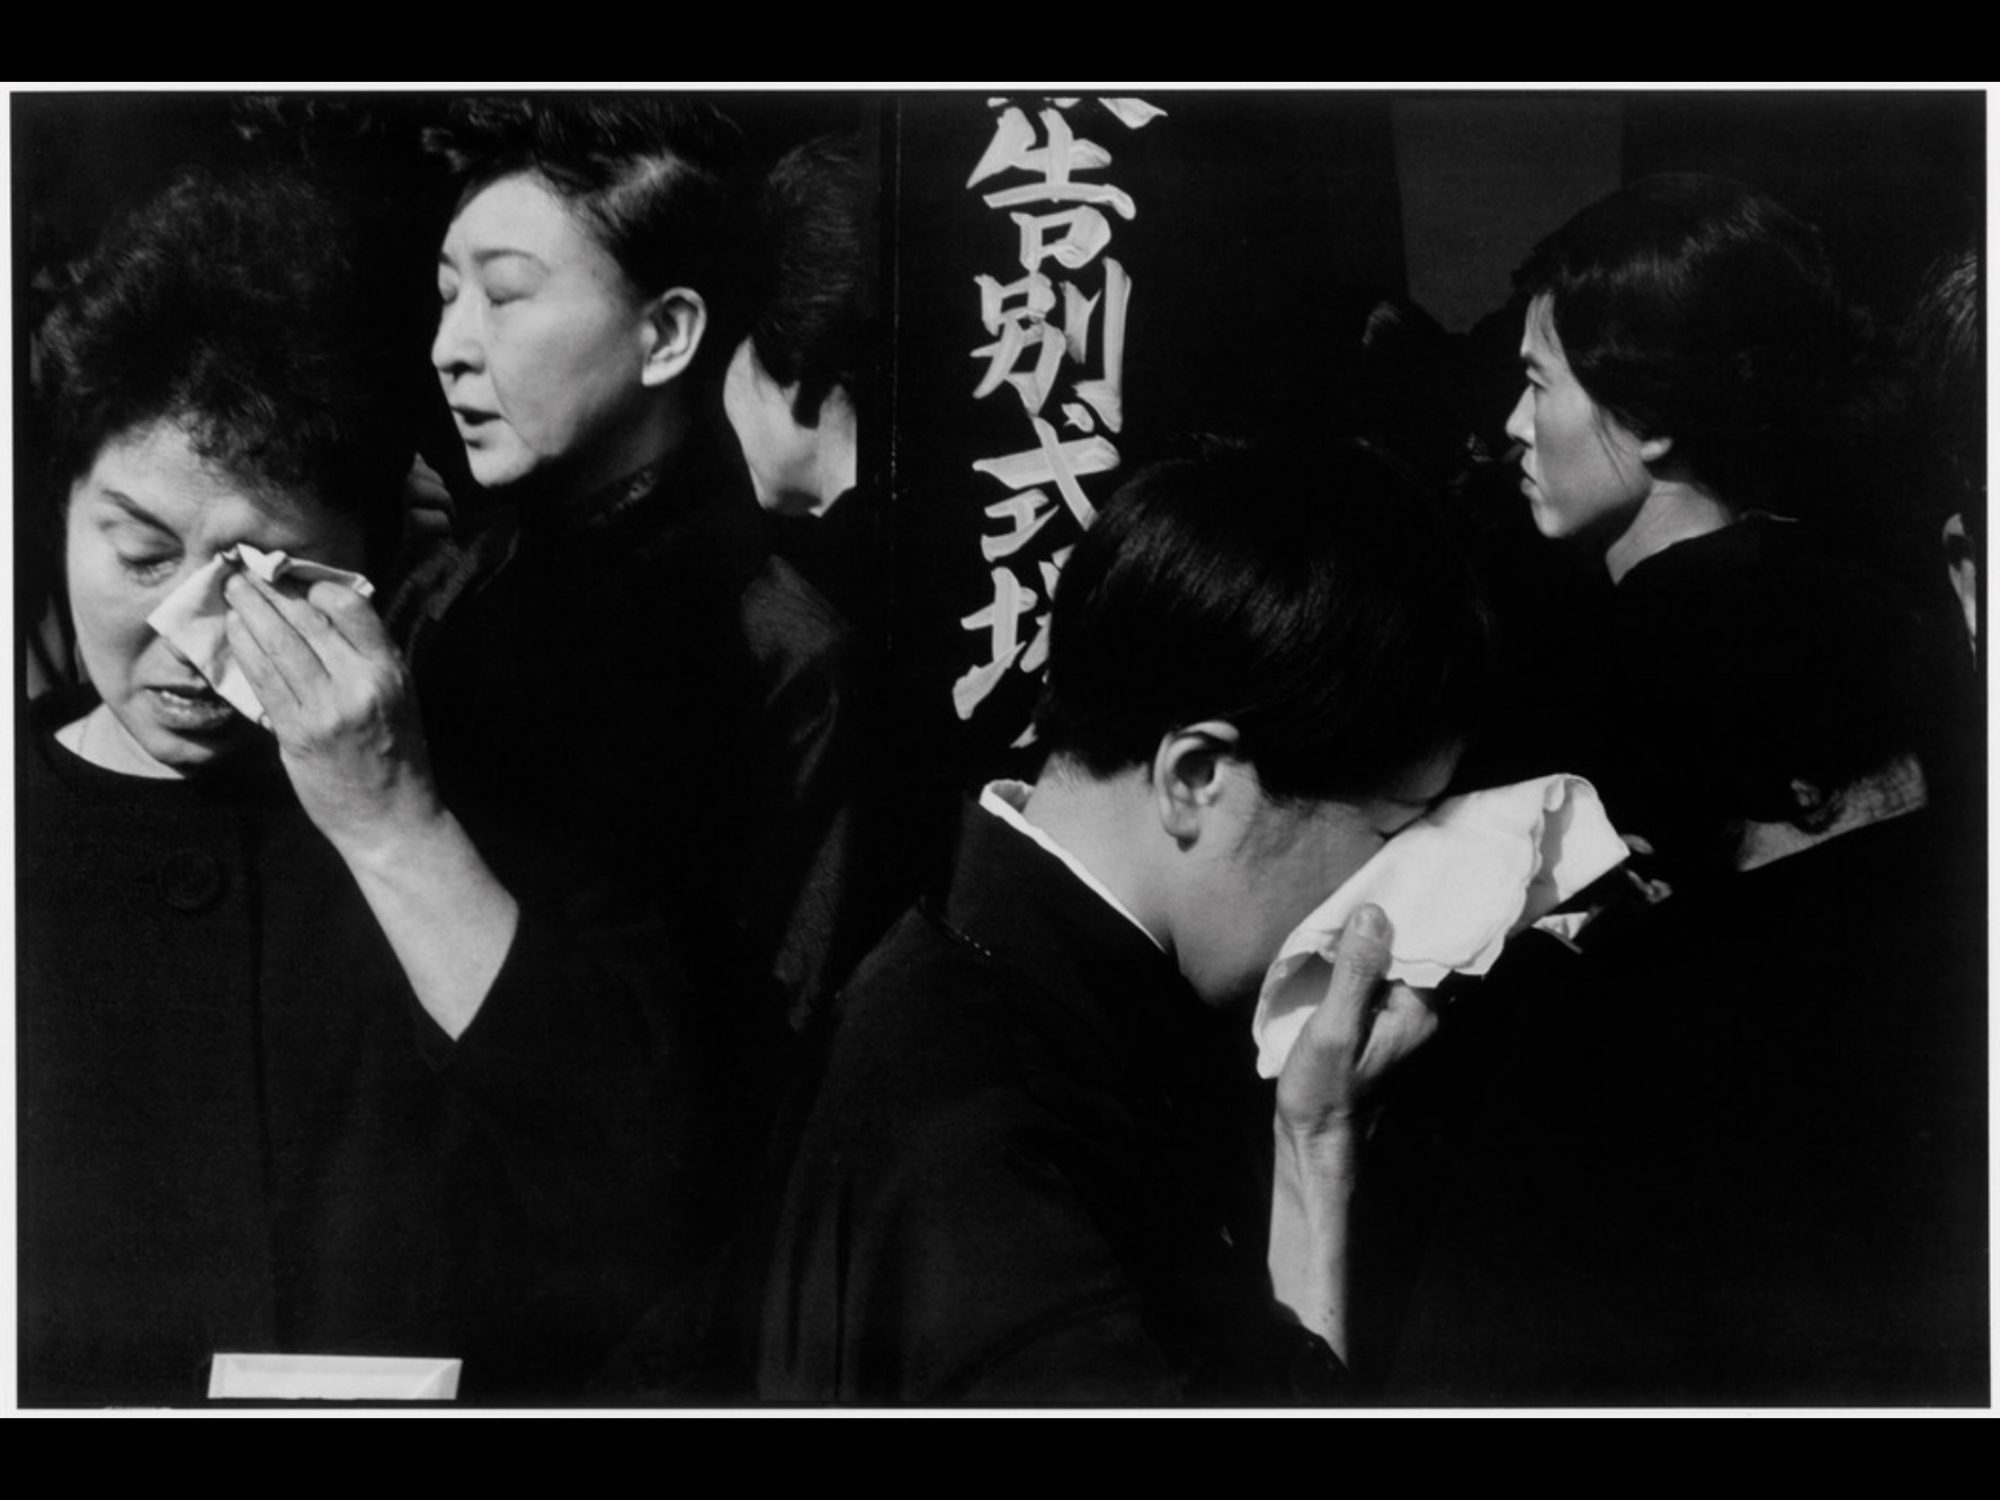 Funeral in Japan by Henri Cartier Bresson